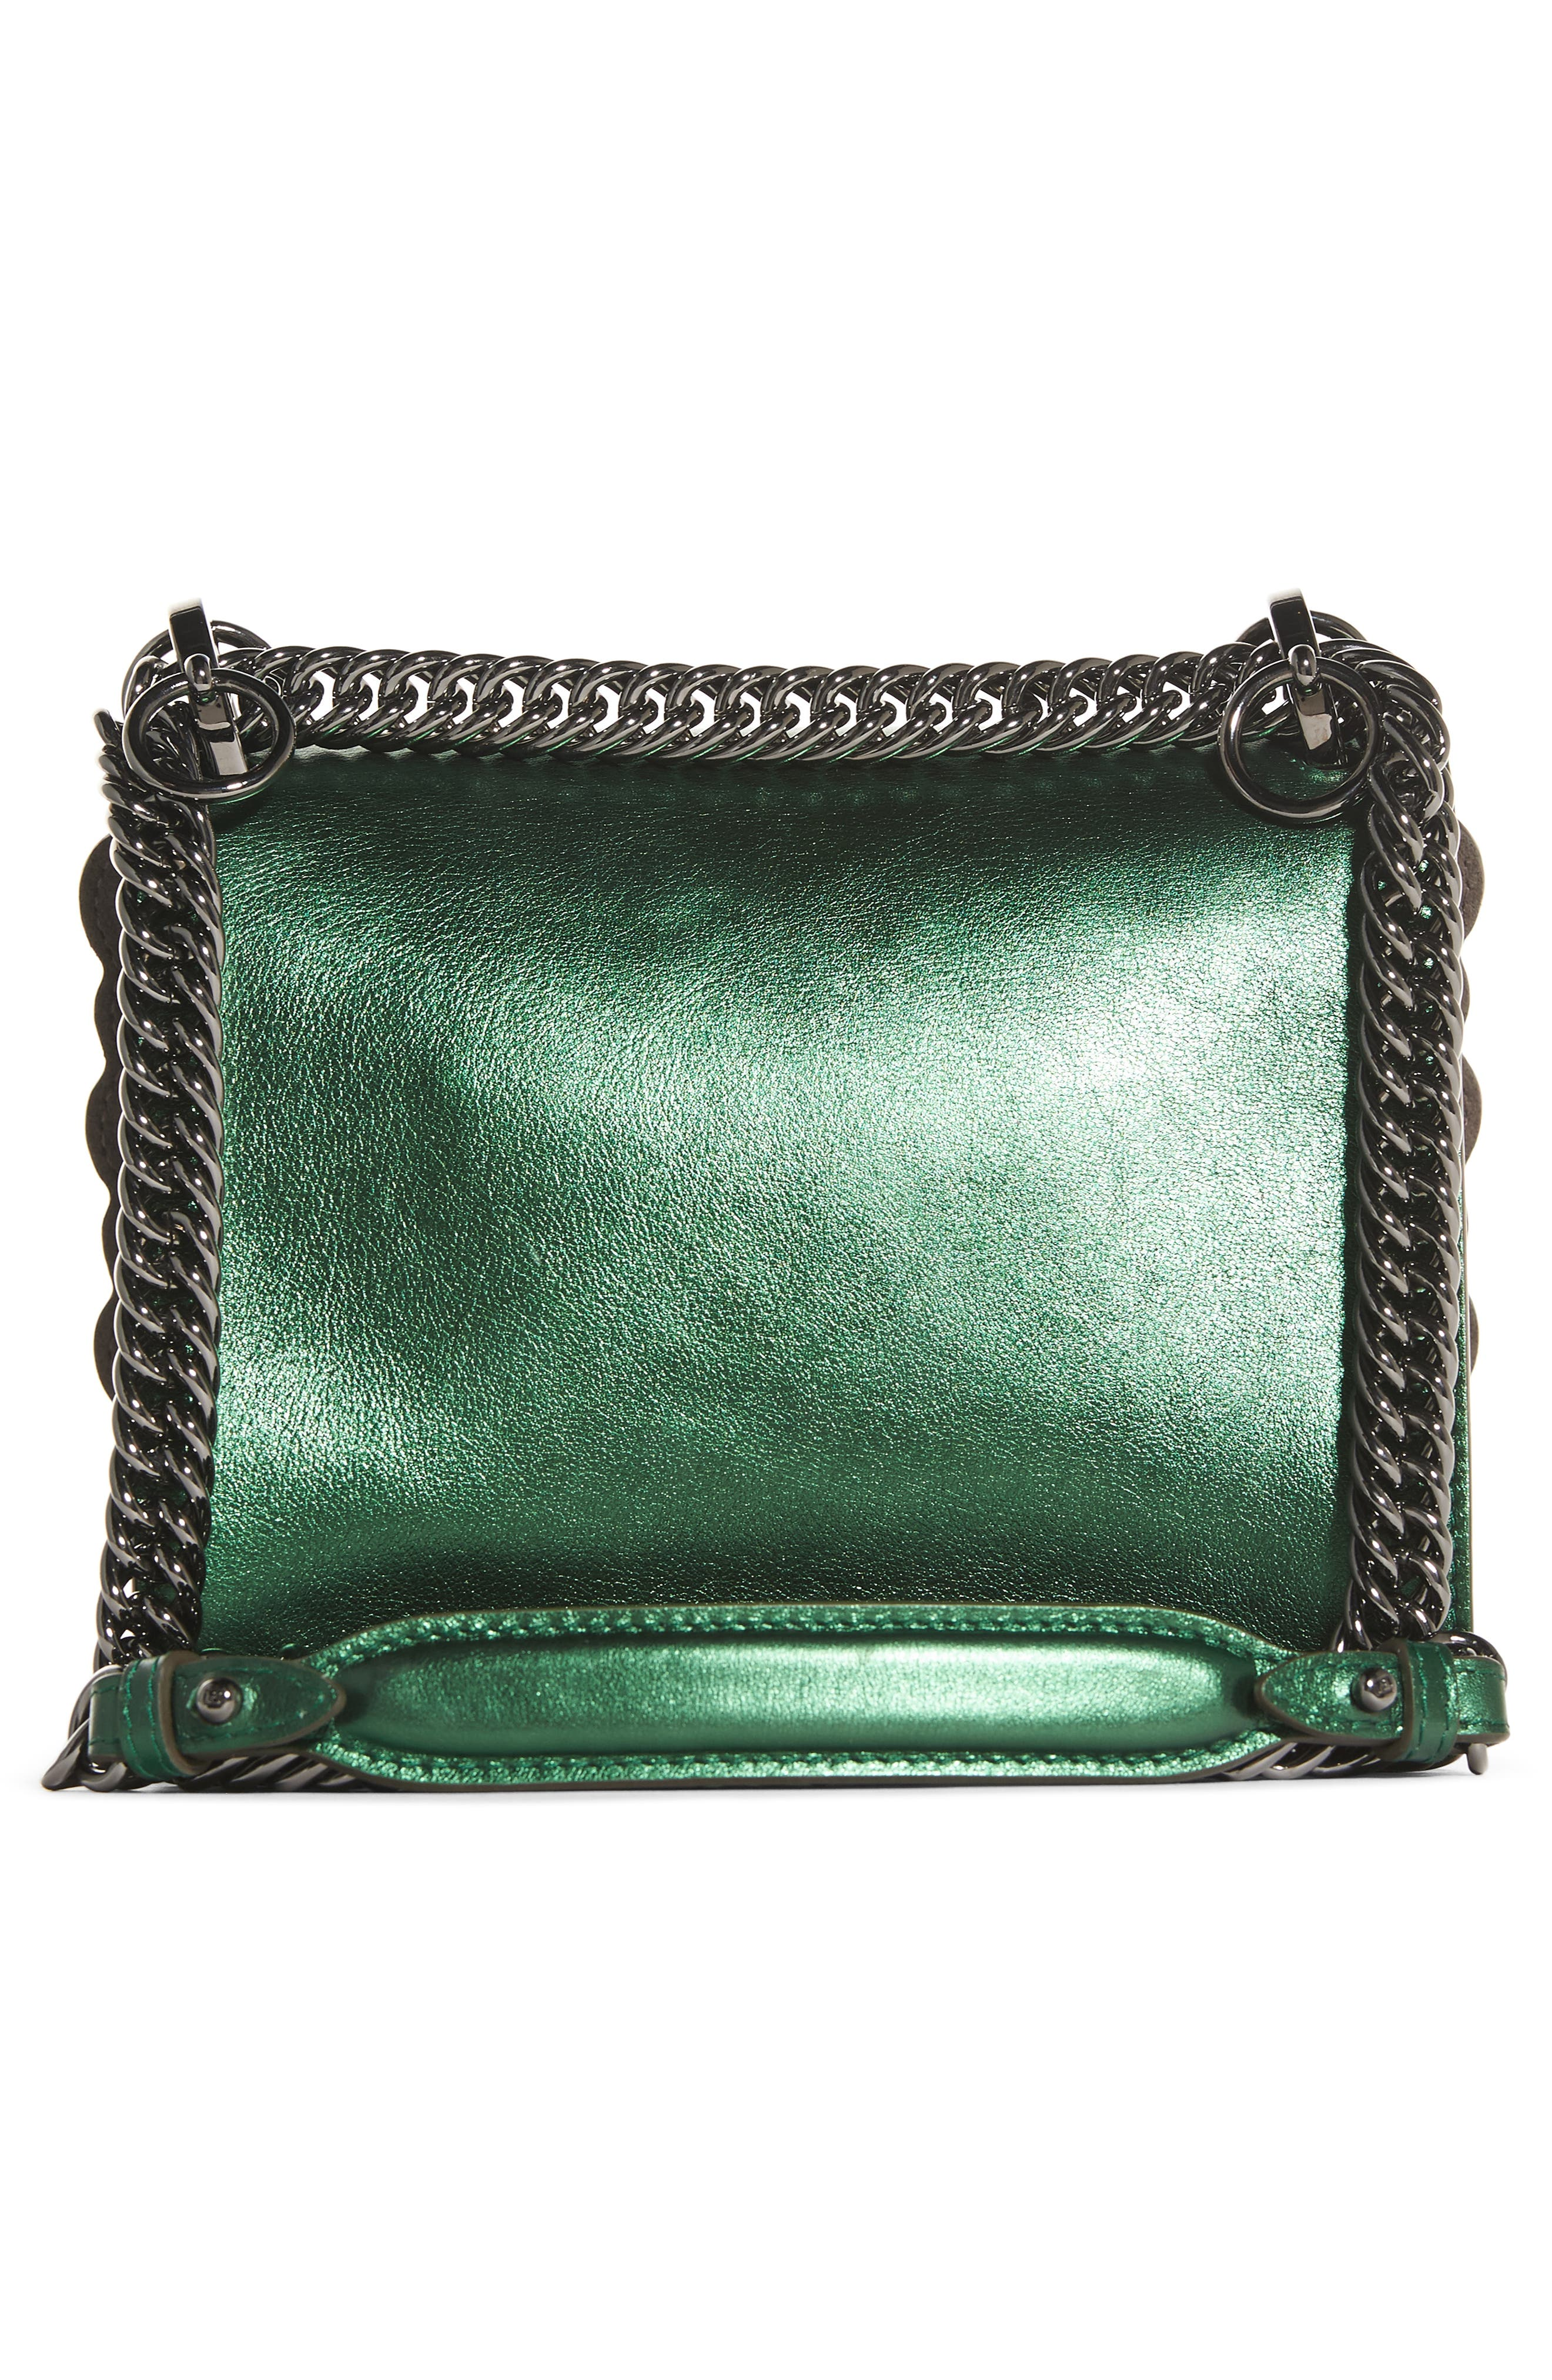 Small Kan I Metallic Leather Shoulder Bag,                             Alternate thumbnail 2, color,                             Green Metallic